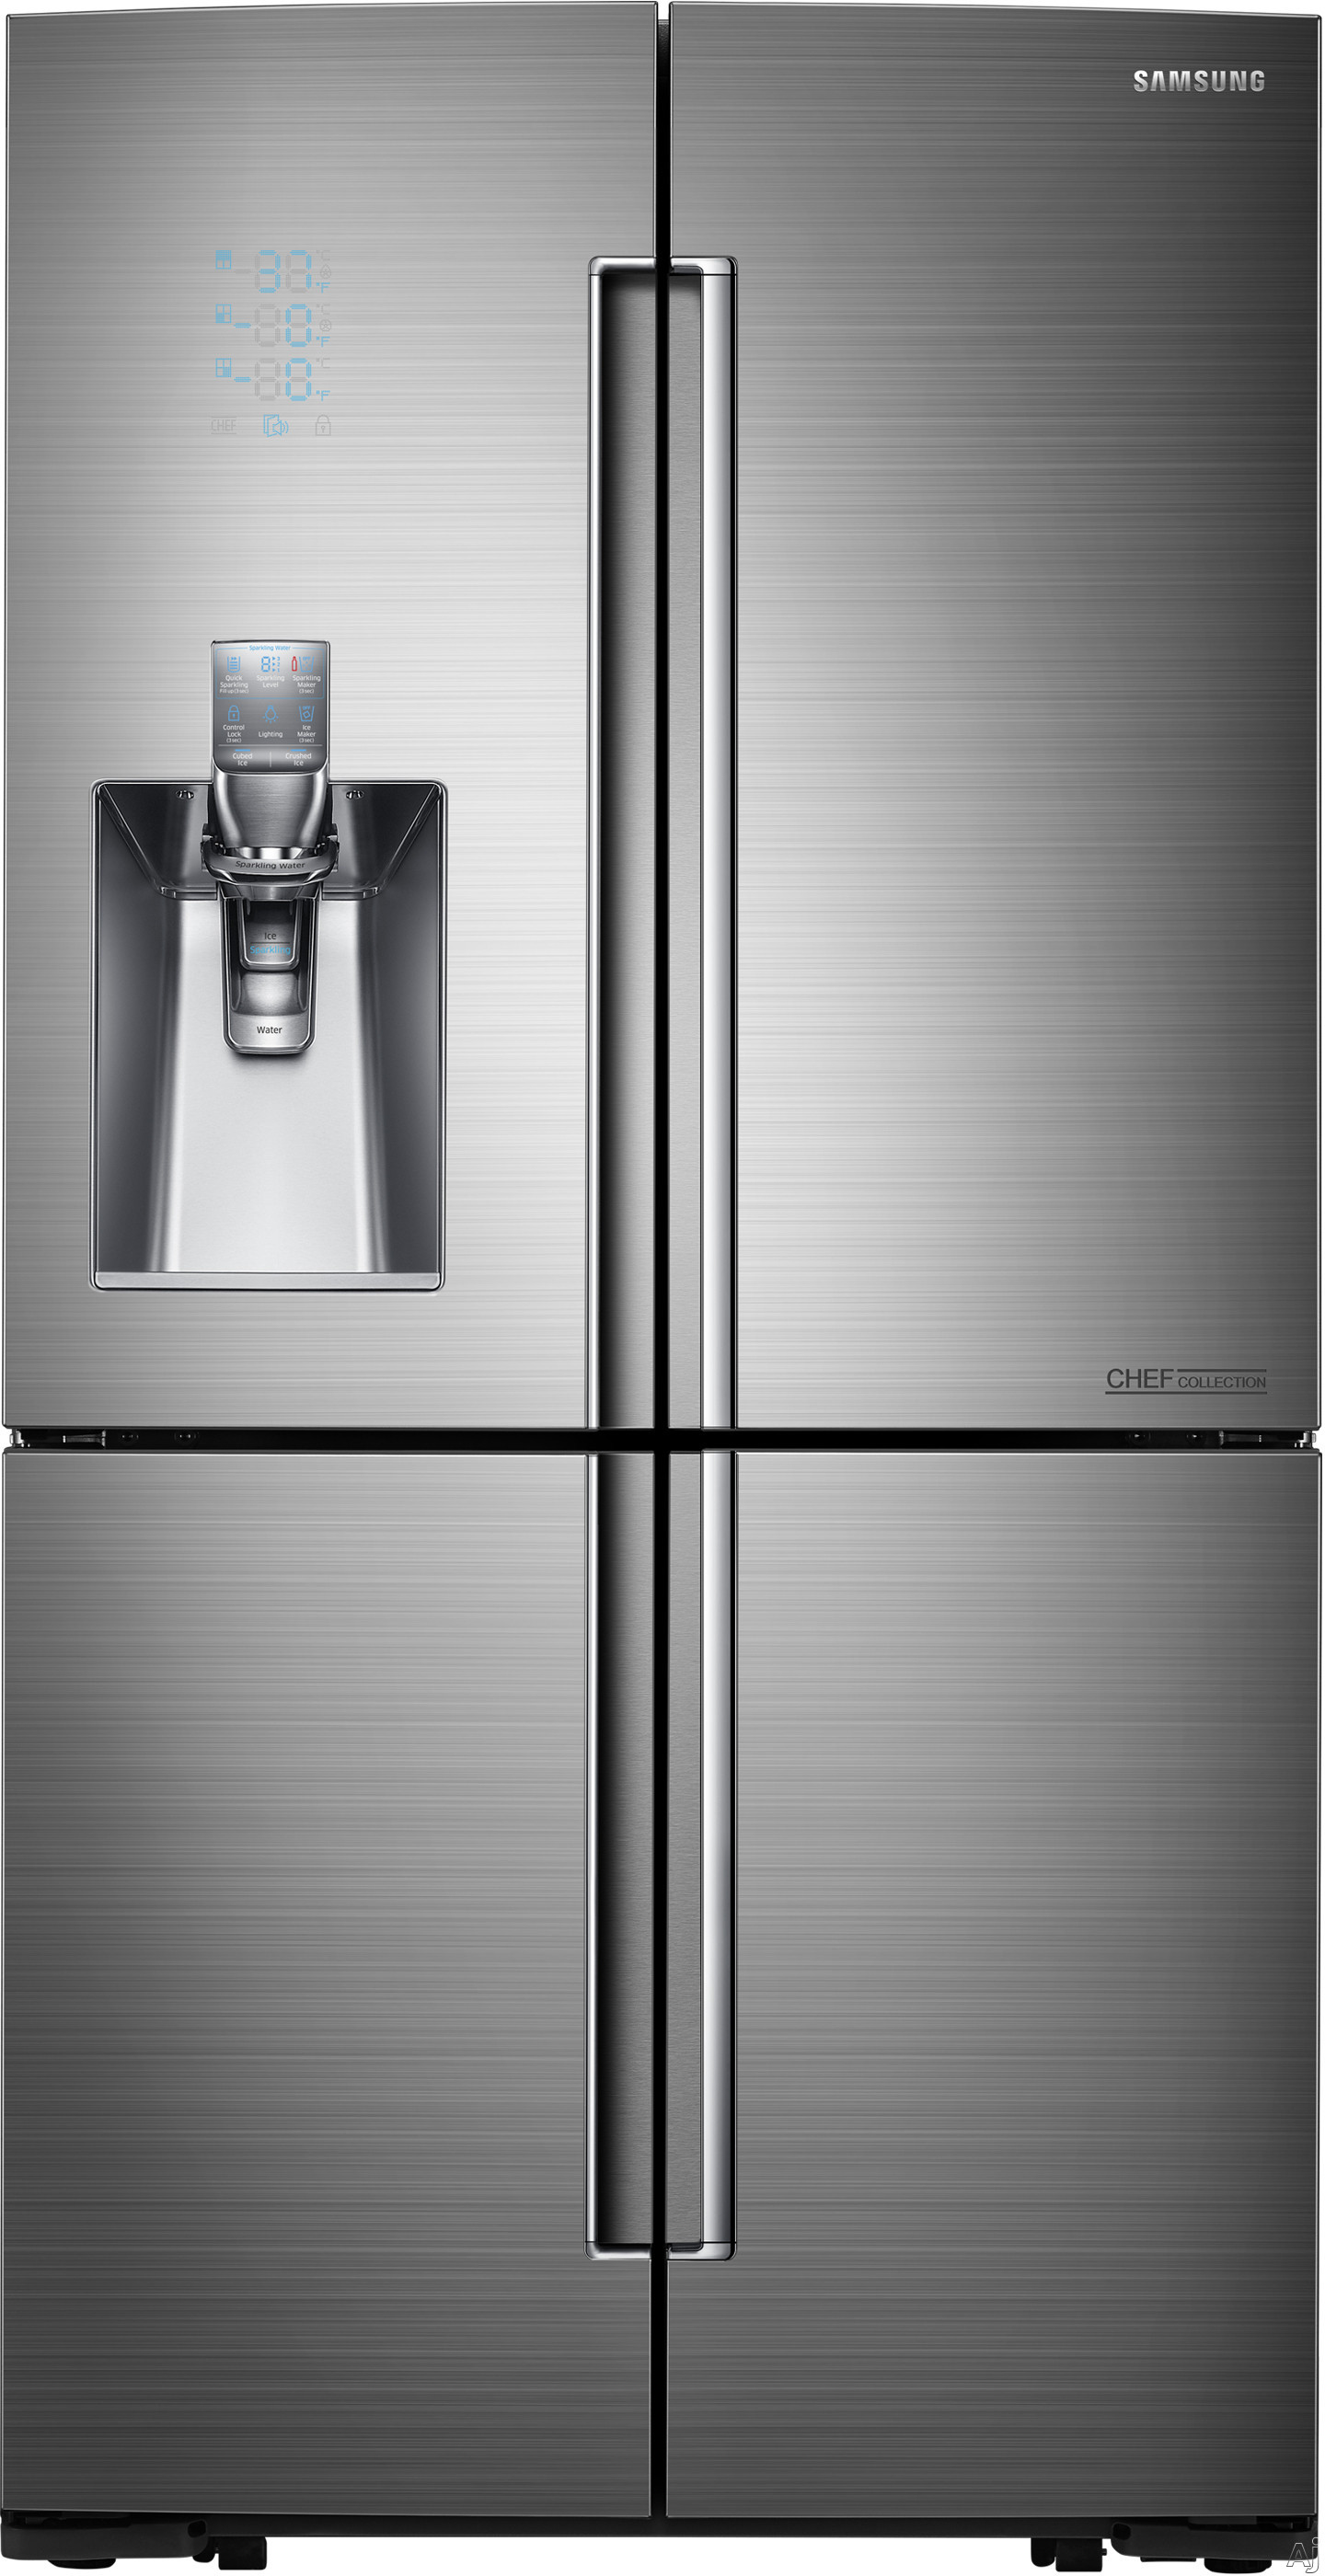 Image of Samsung Chef Collection RF24J9960S4 36 Inch Counter Depth 4-Door French Door Refrigerator with 24.1 cu. ft. Capacity, 4 Door Flex, Flex Zone, Chef Pantry, Sparkling Water Feature, External Water and Ice Dispenser, 4 Pillar Lighting and Energy Star Qualifi